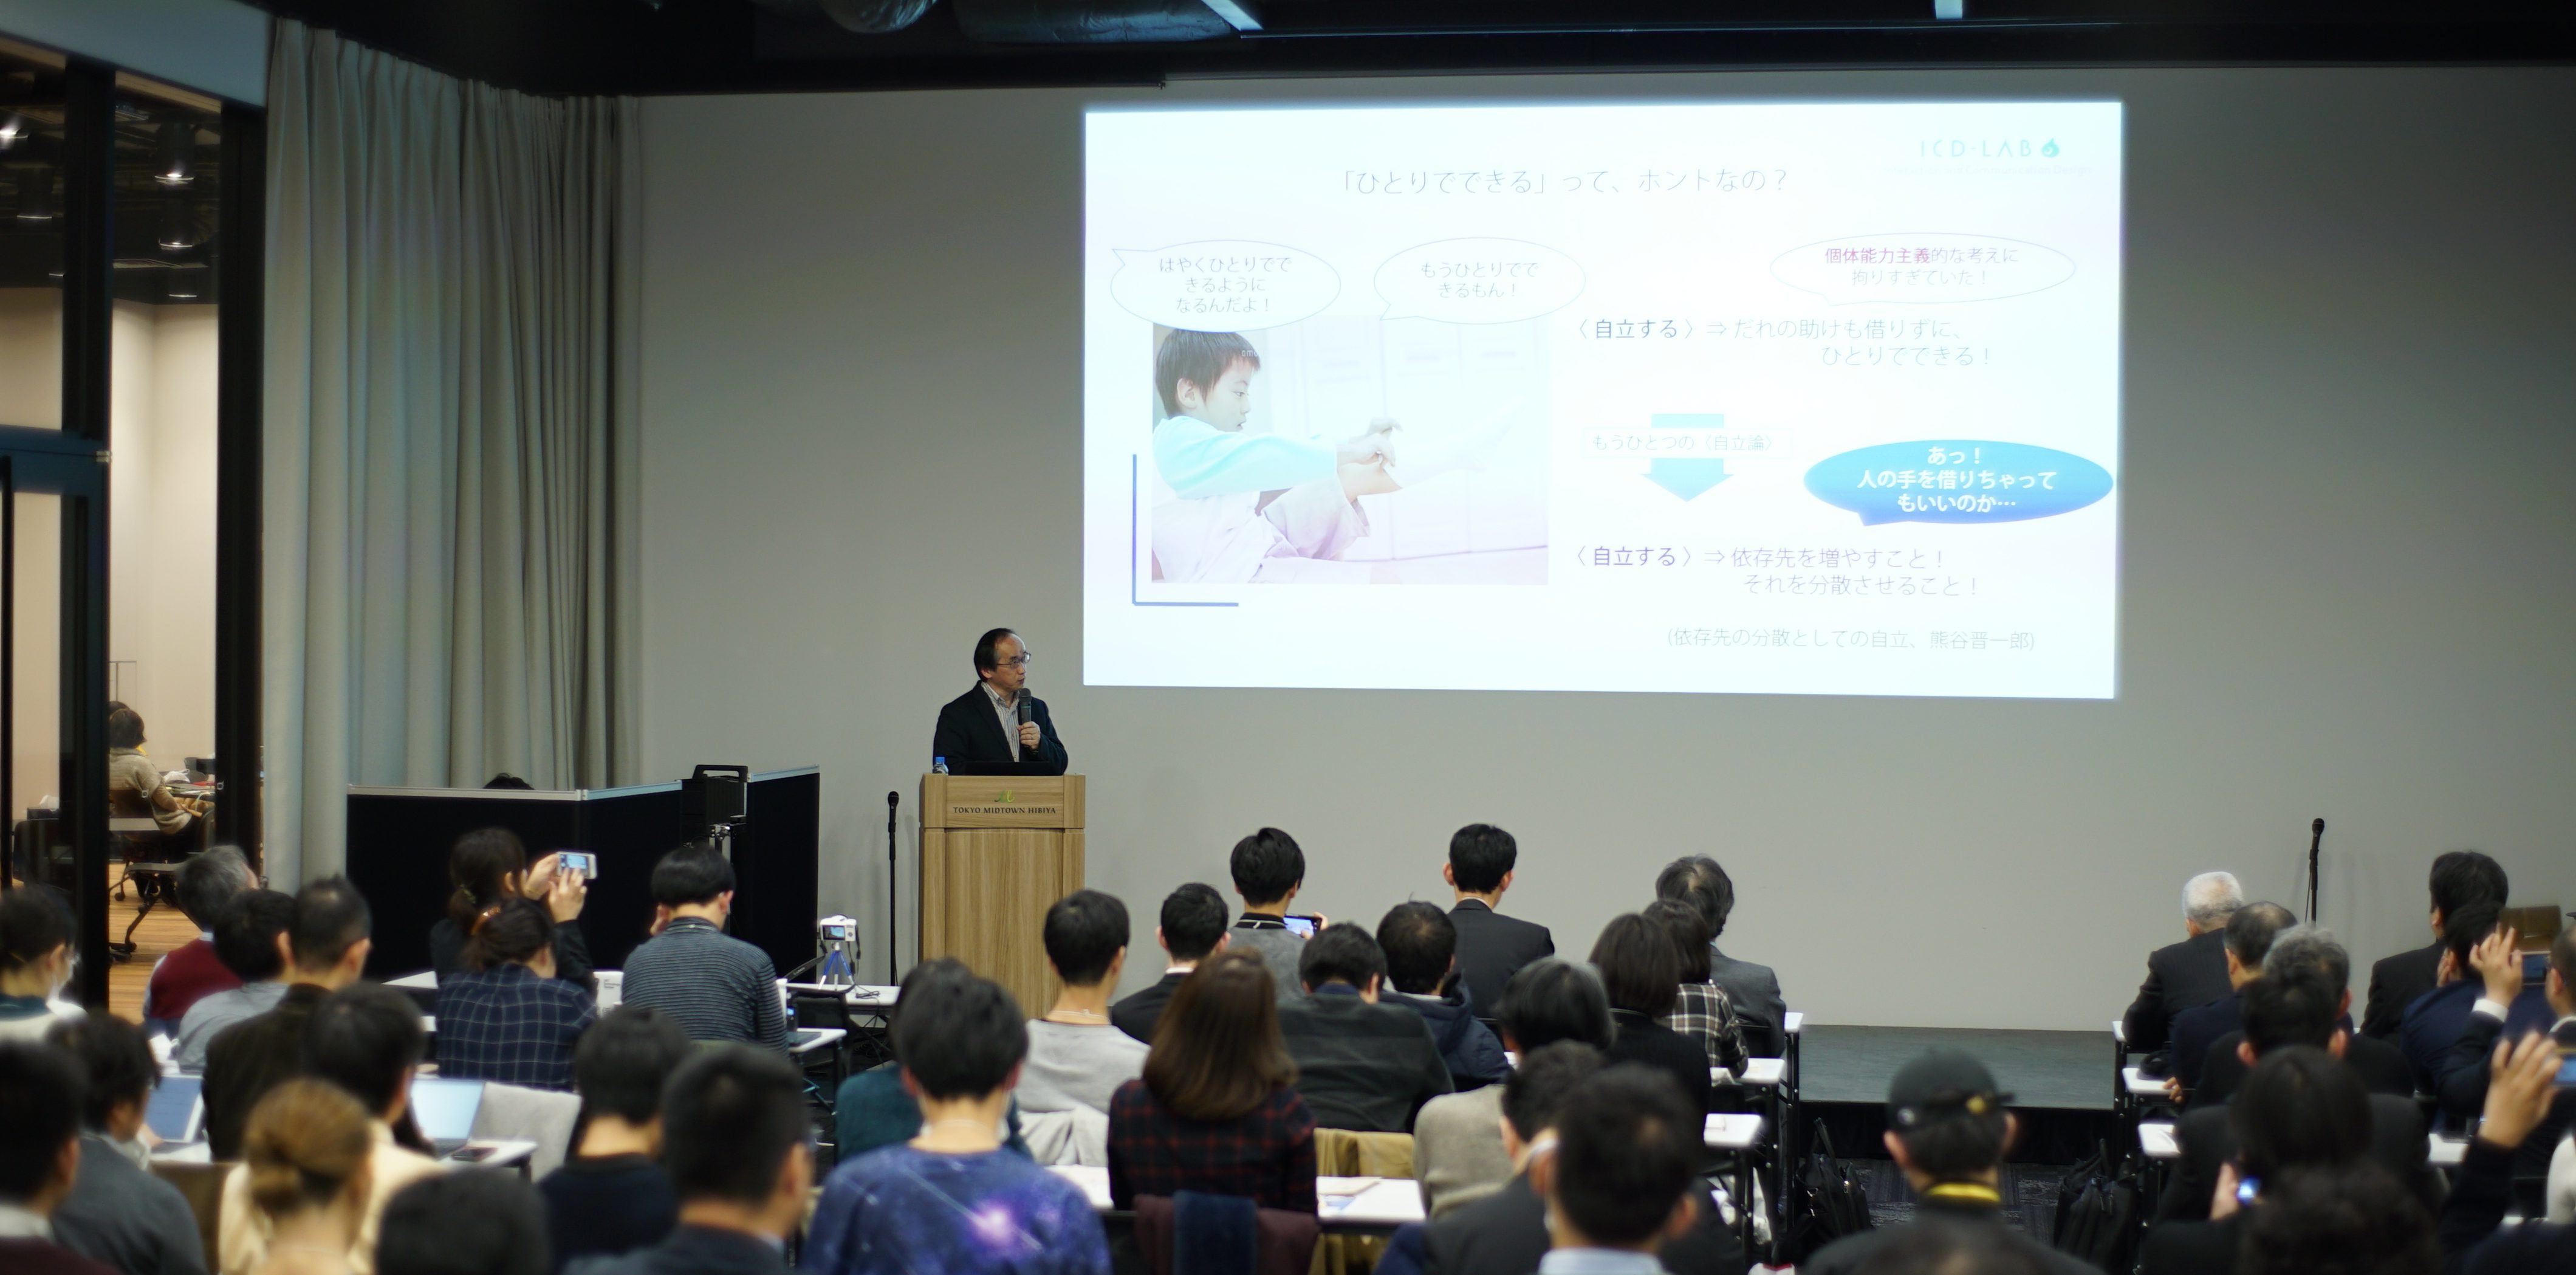 MIT TECHNOLOGY REVIEW Japan (2019/07/22)